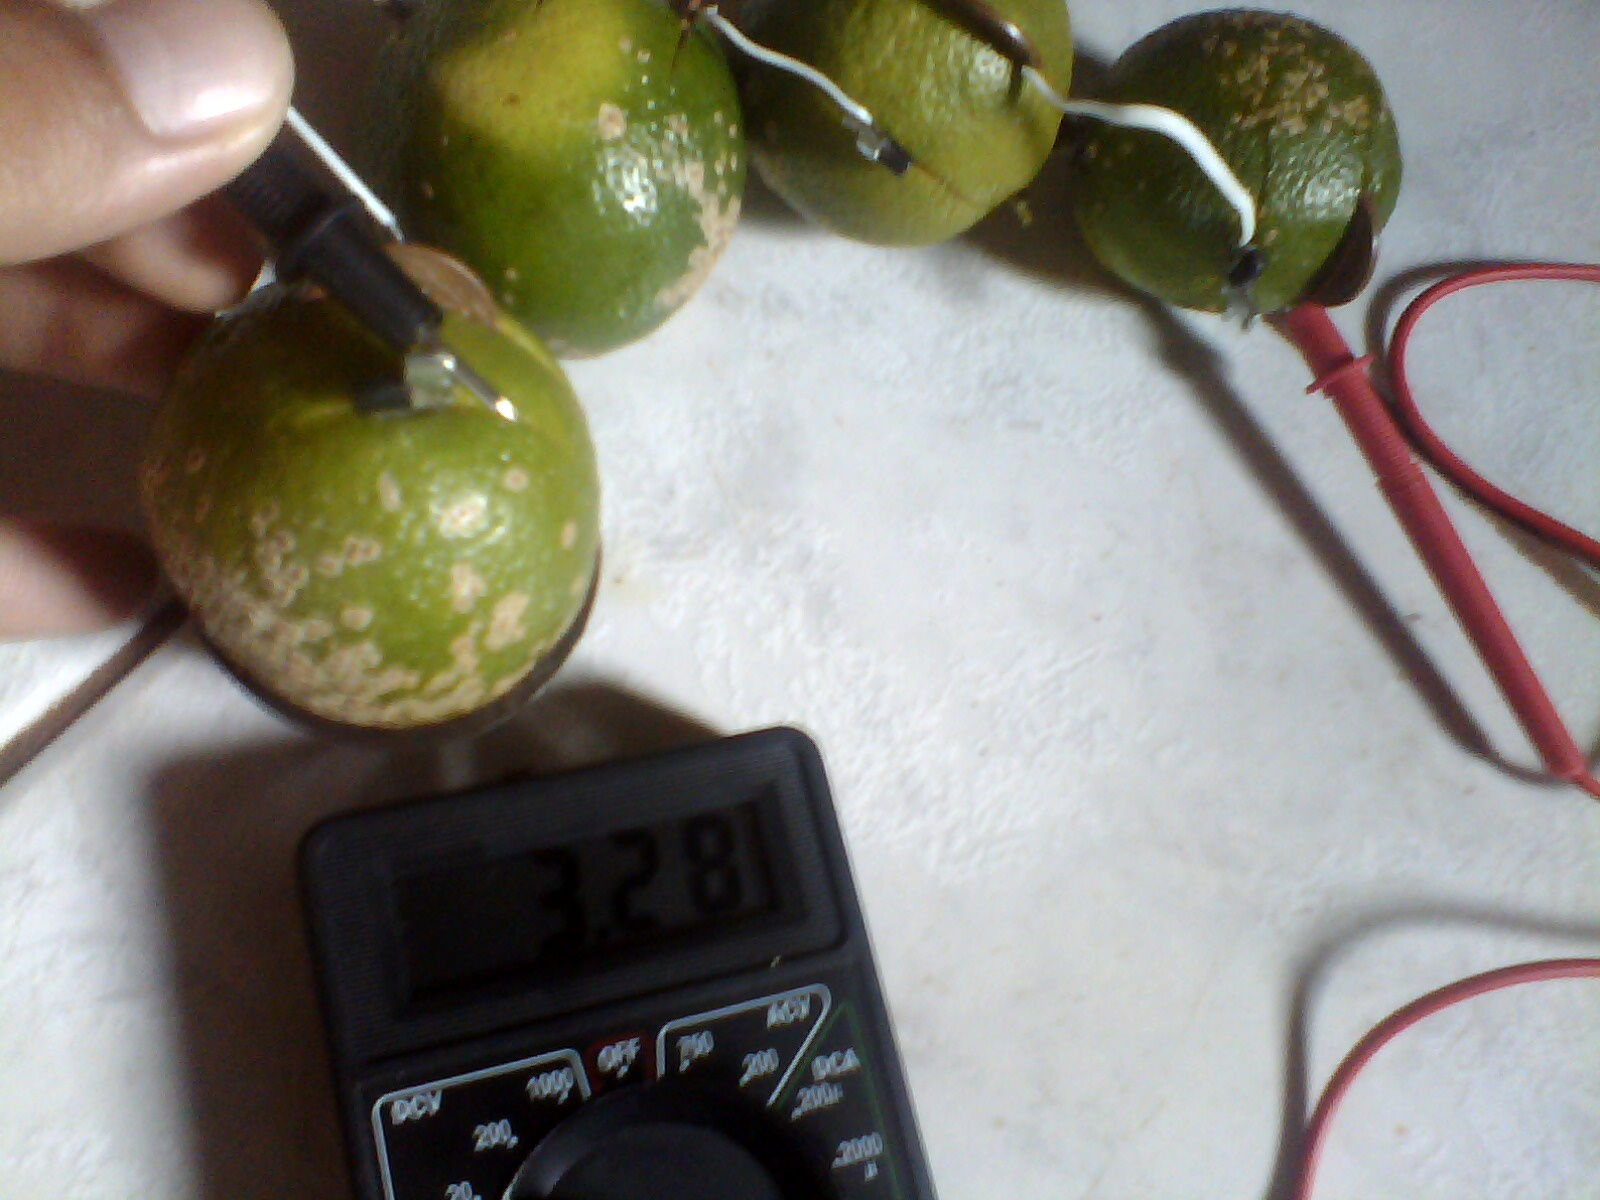 Picture of Simple Electrolytic Cell Made with Citrus Fruits